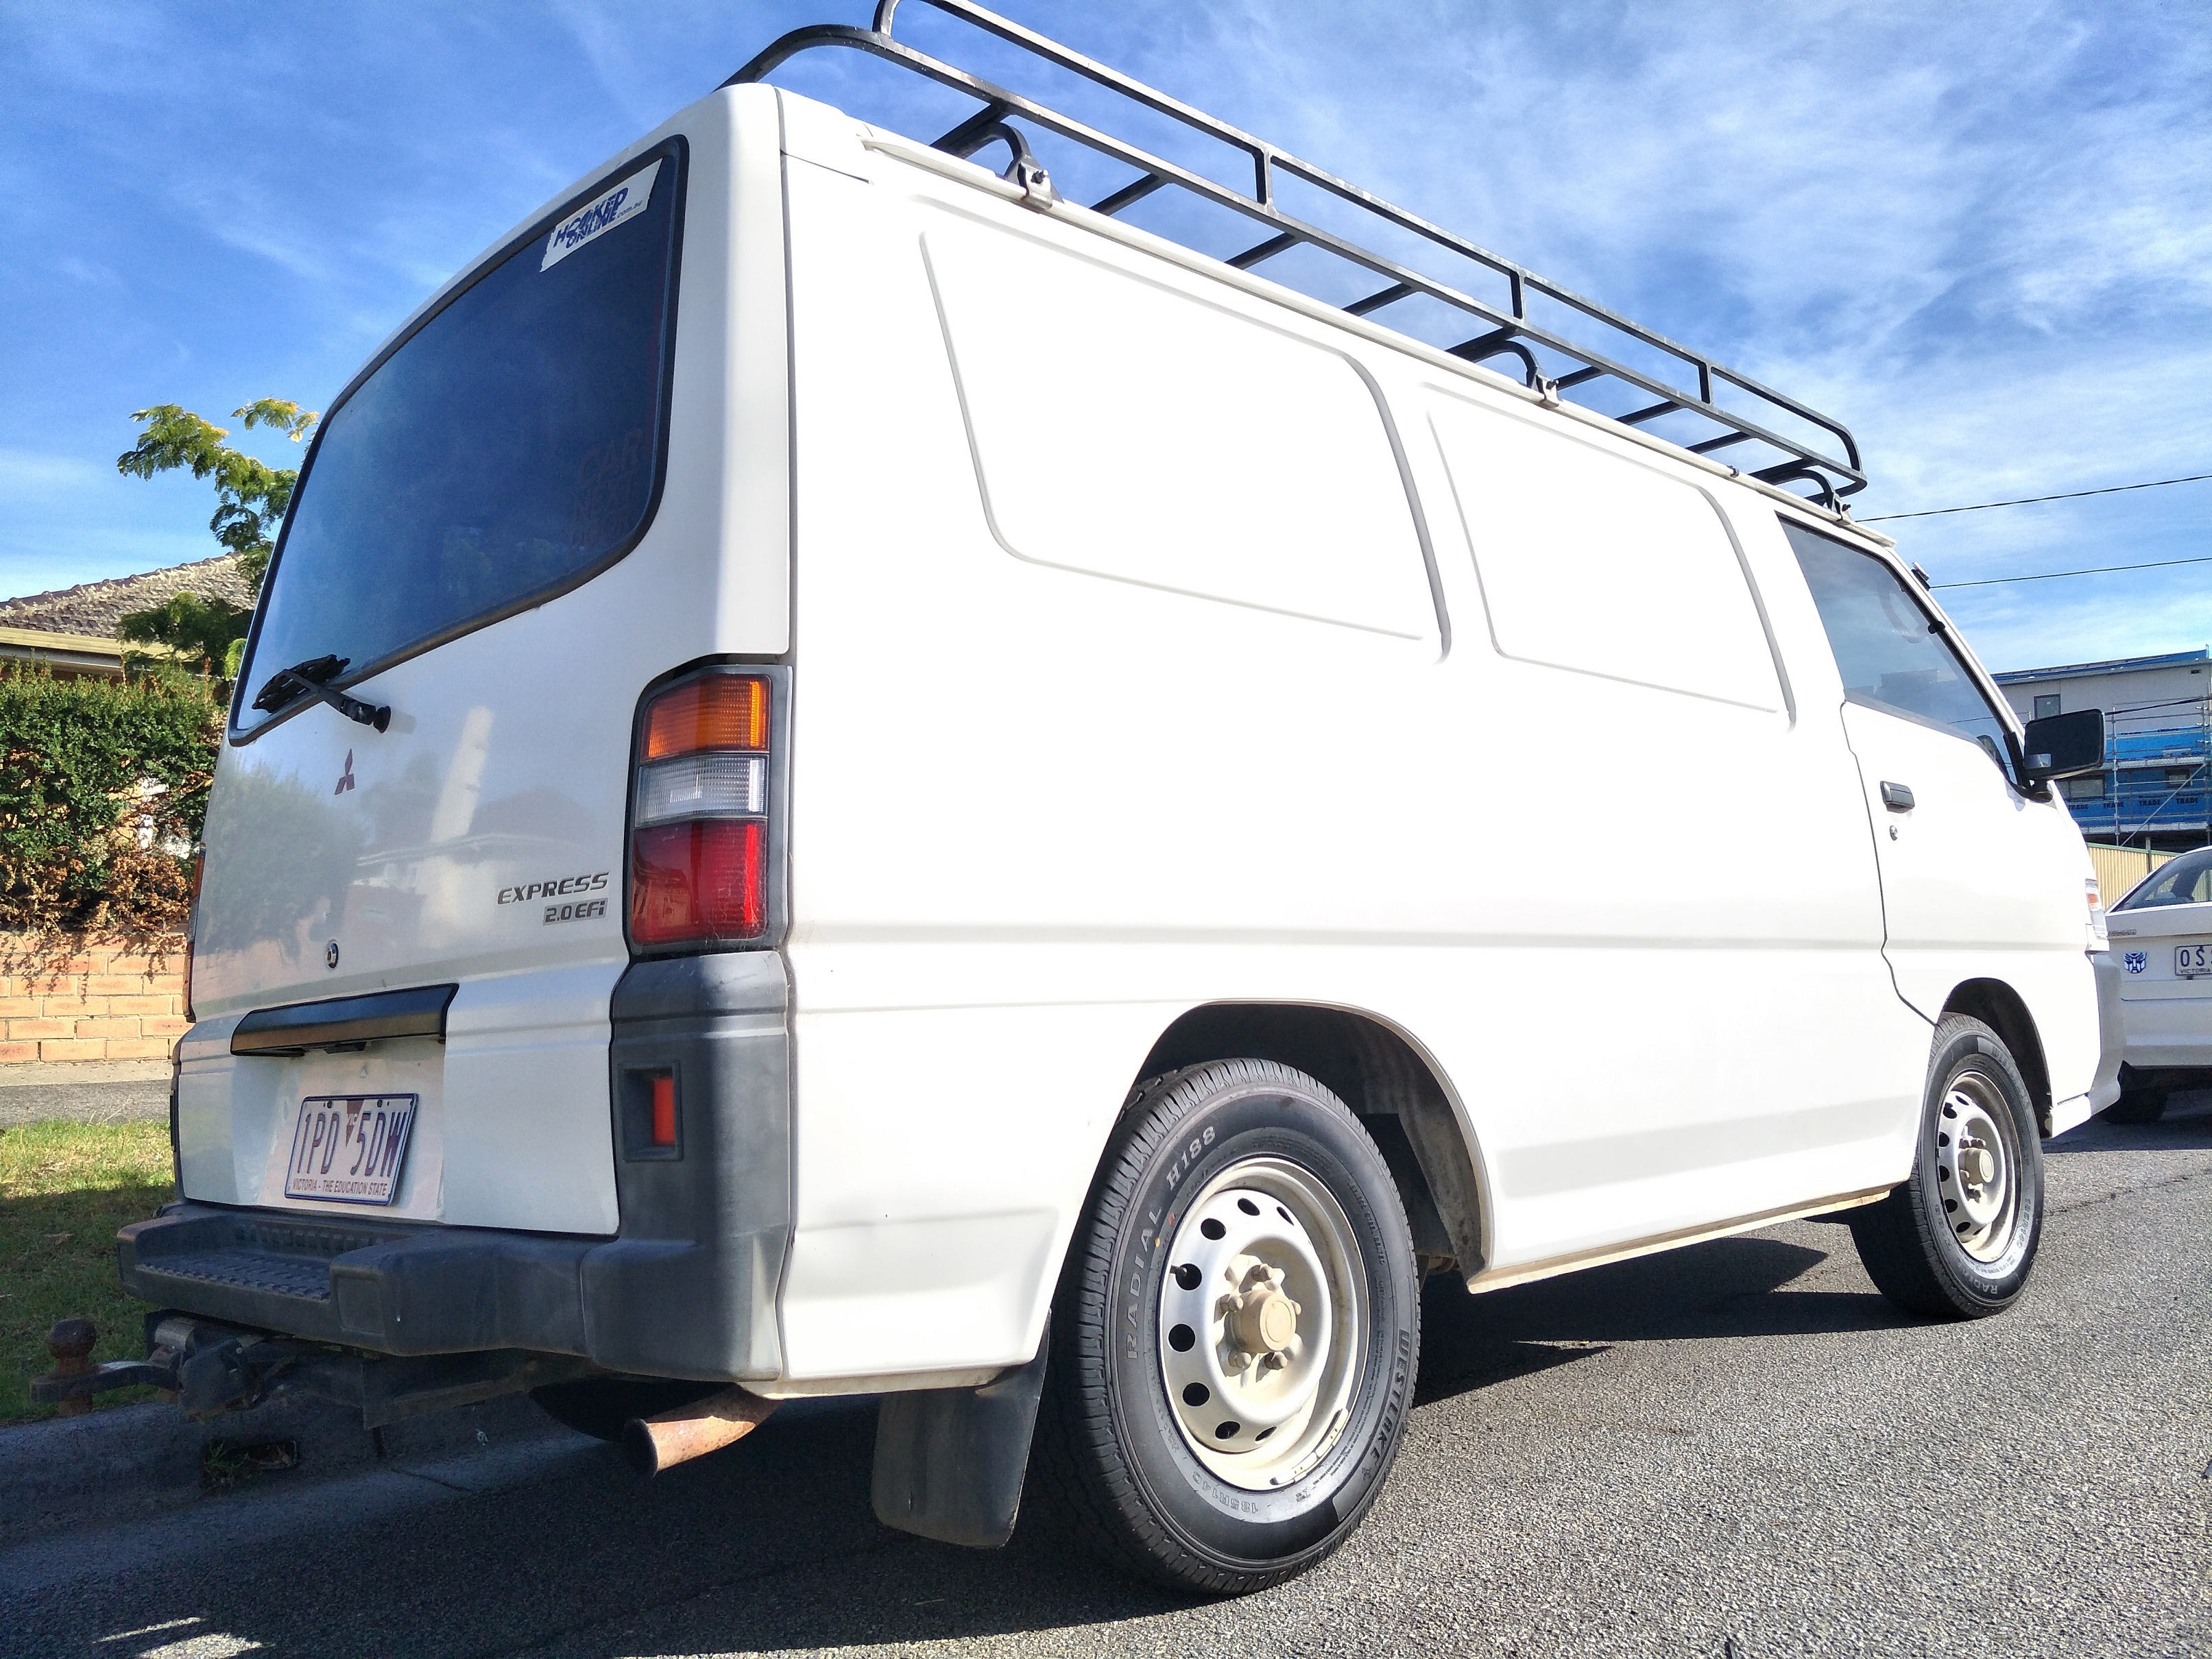 Picture of Matthew's 2005 Mitsubishi Express